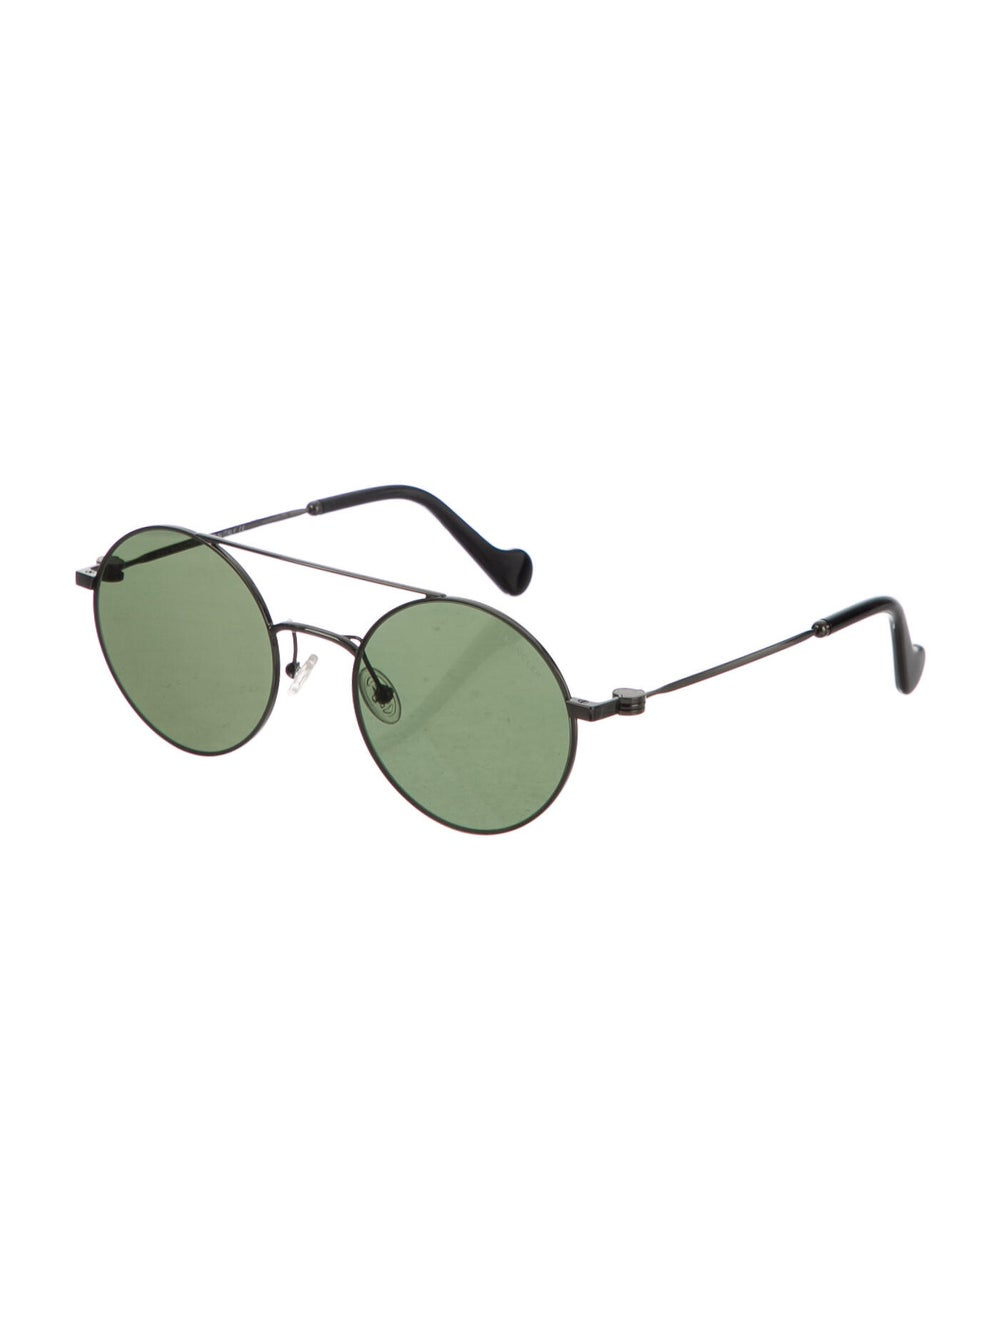 Moncler Round Tinted Sunglasses Silver - image 2